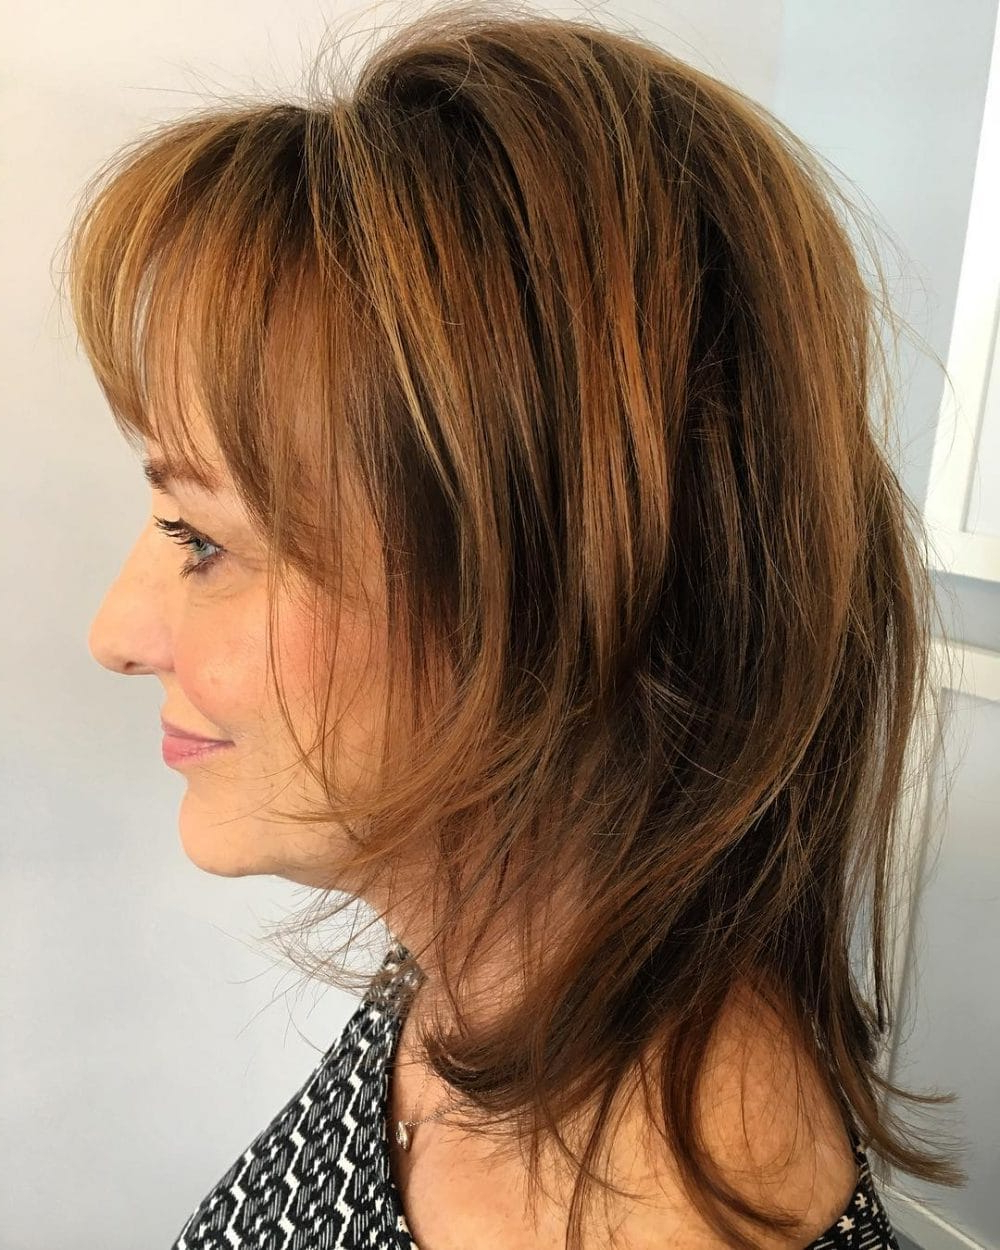 26 Modern Shag Haircuts To Try In 2019 Intended For Current Wispy Brunette Shag Hairstyles (View 14 of 20)